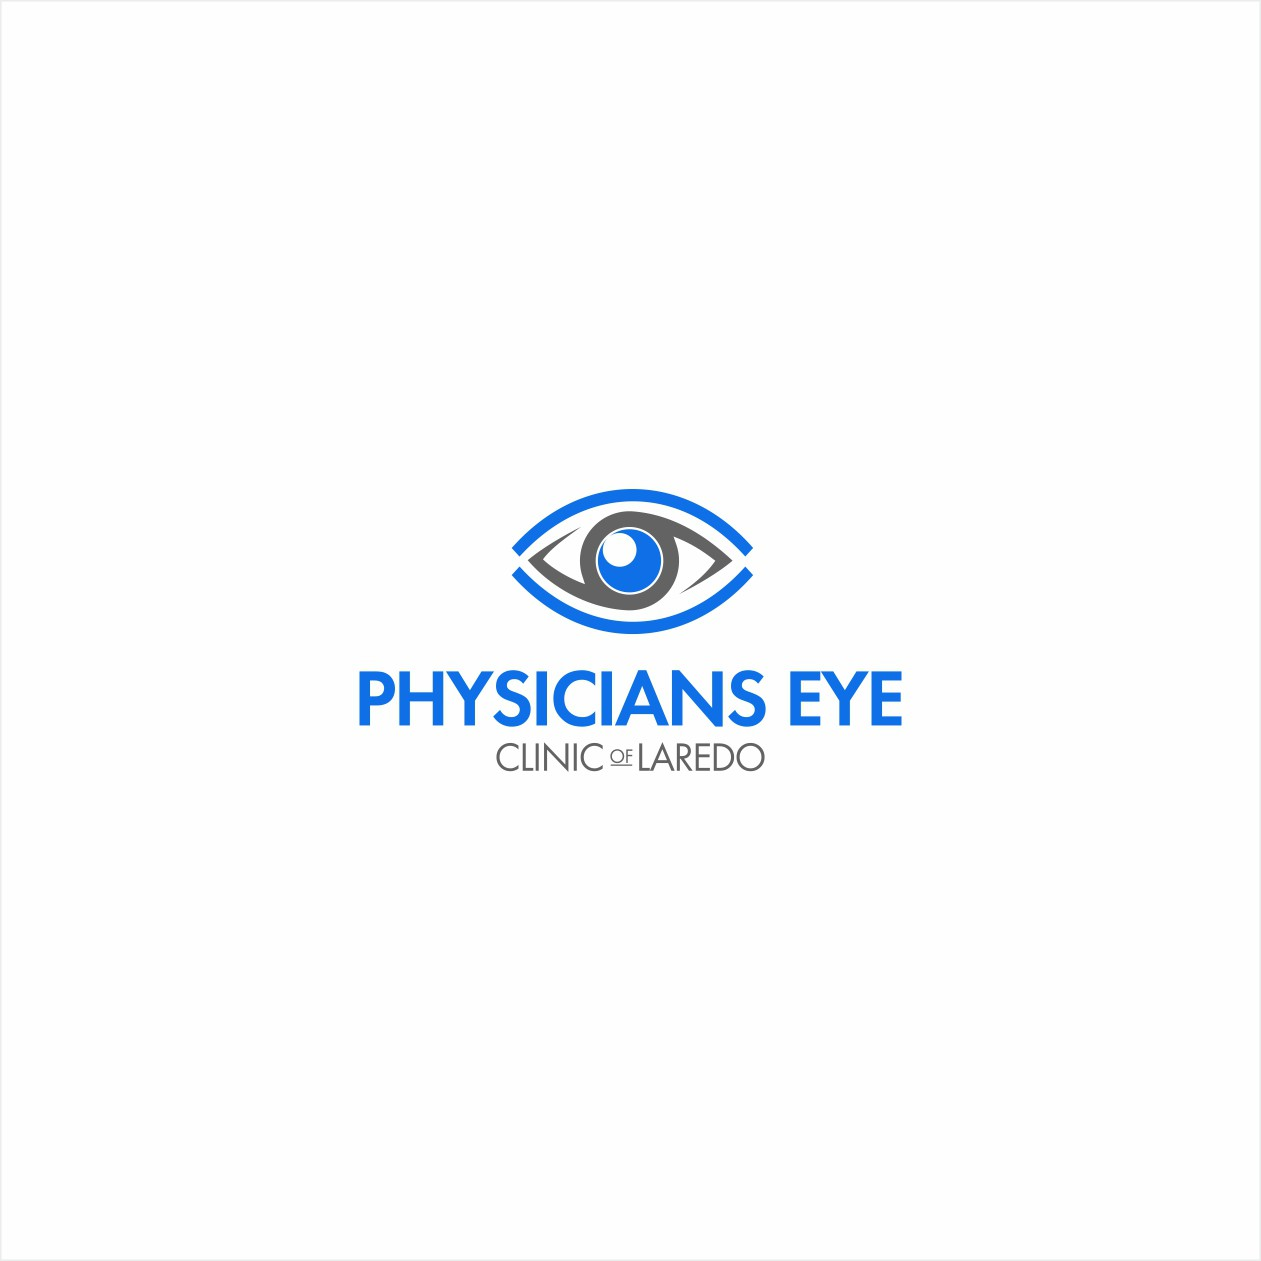 Start-up ophthalmology practice needs clean logo